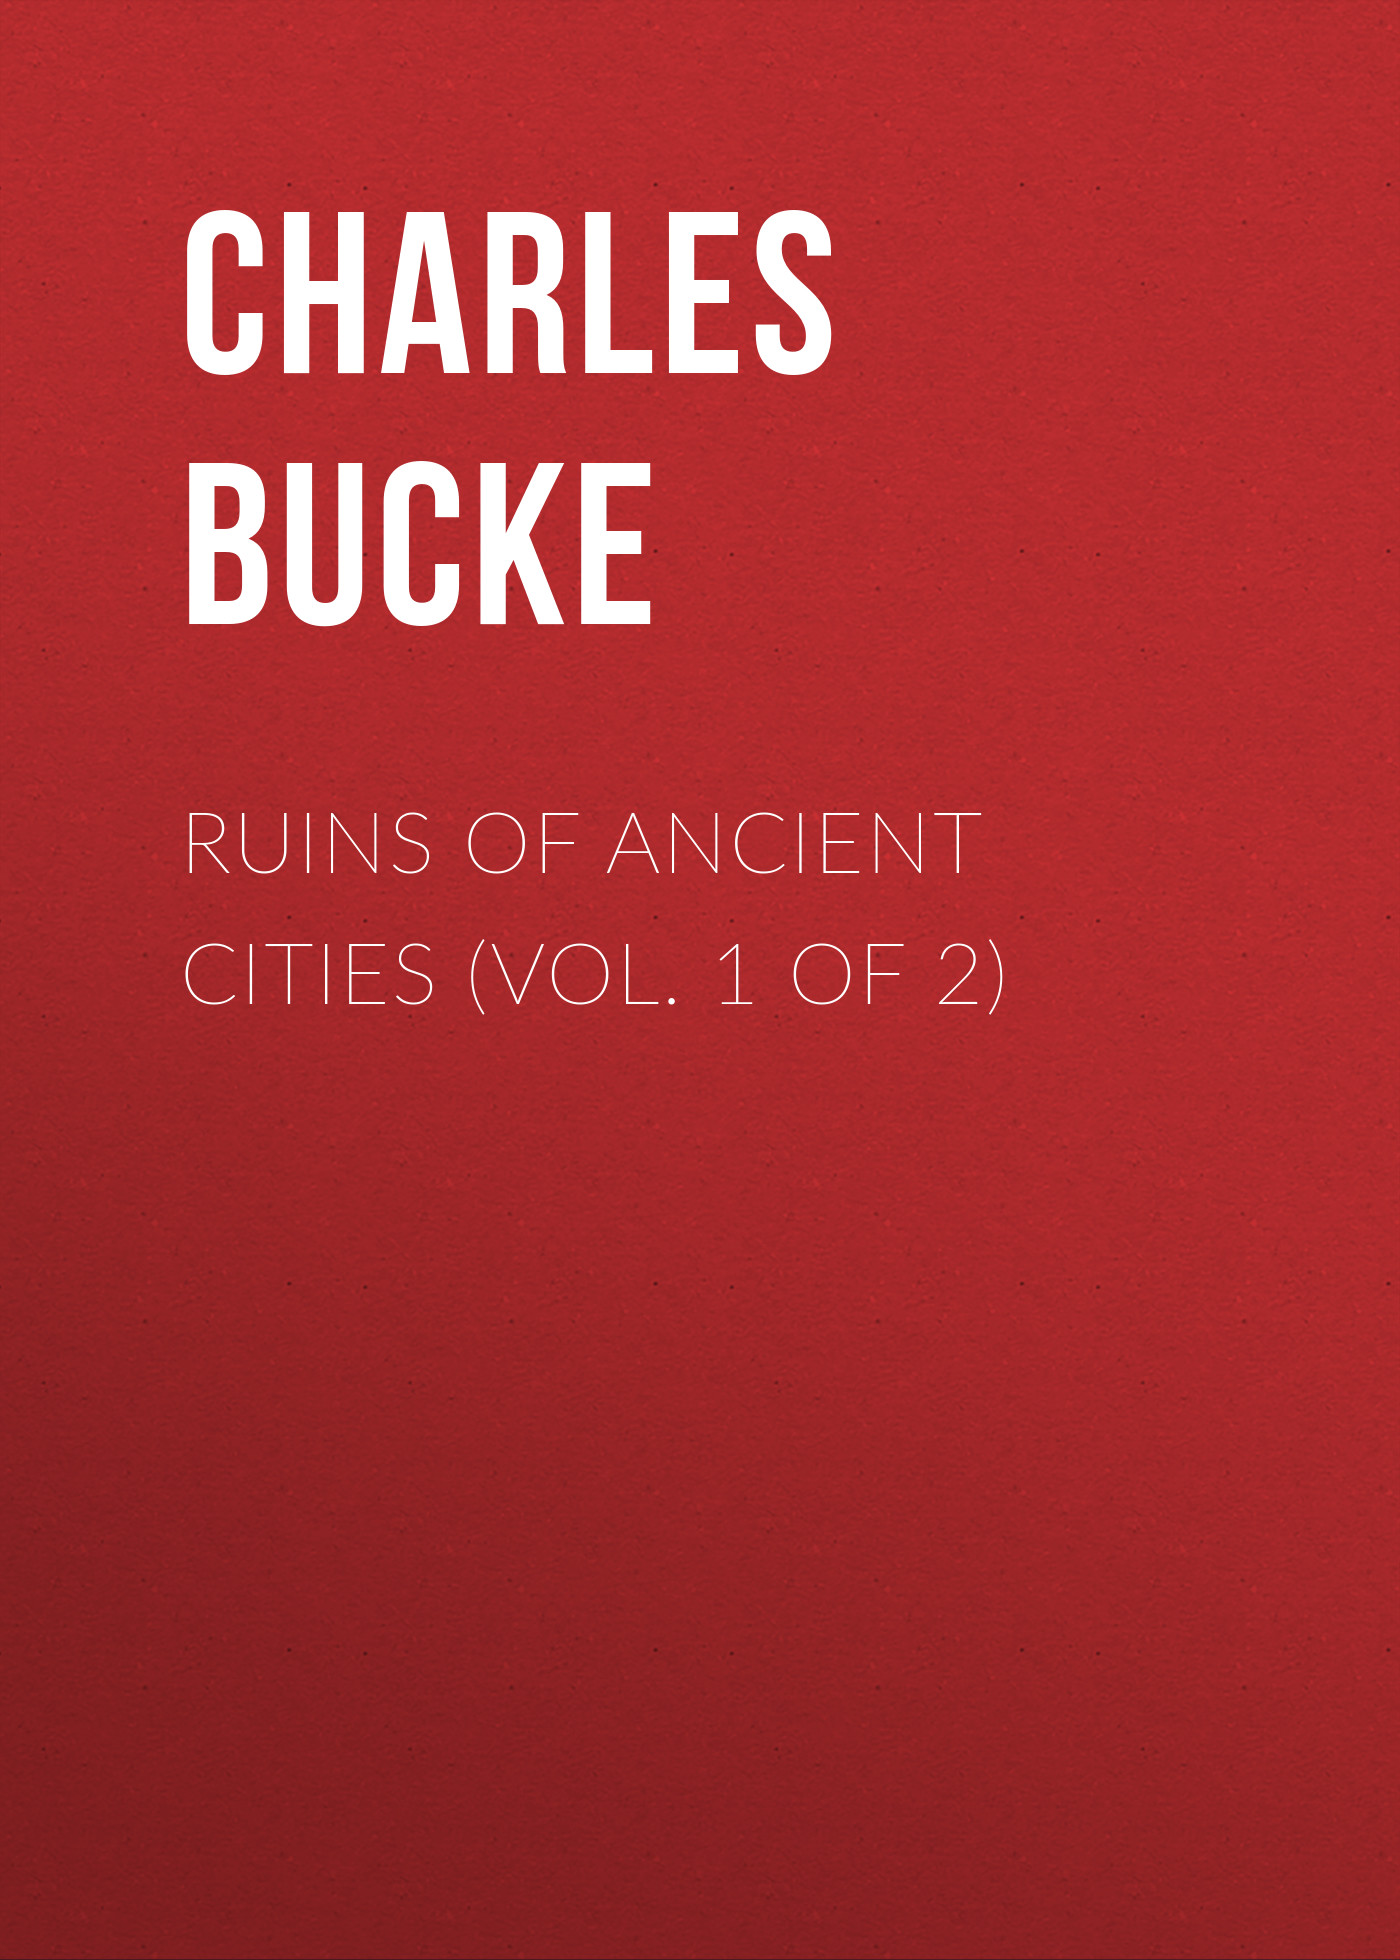 ruins of ancient cities vol 1 of 2